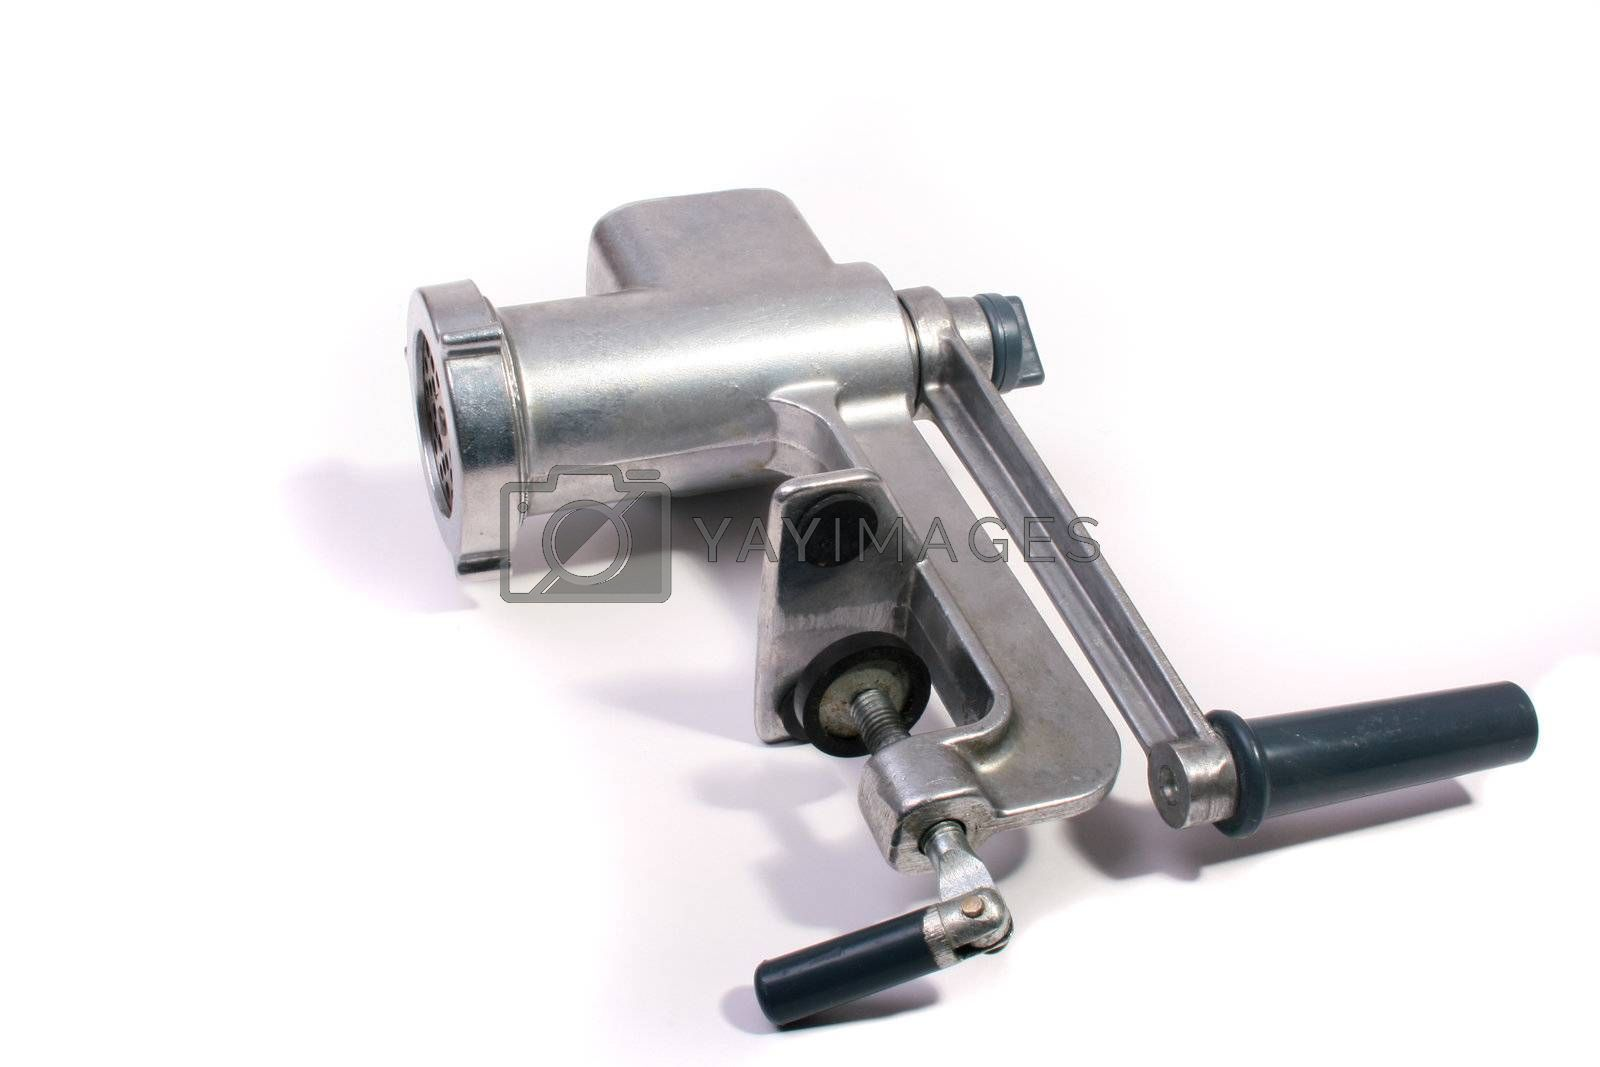 The disassembled meat grinder on a white background.